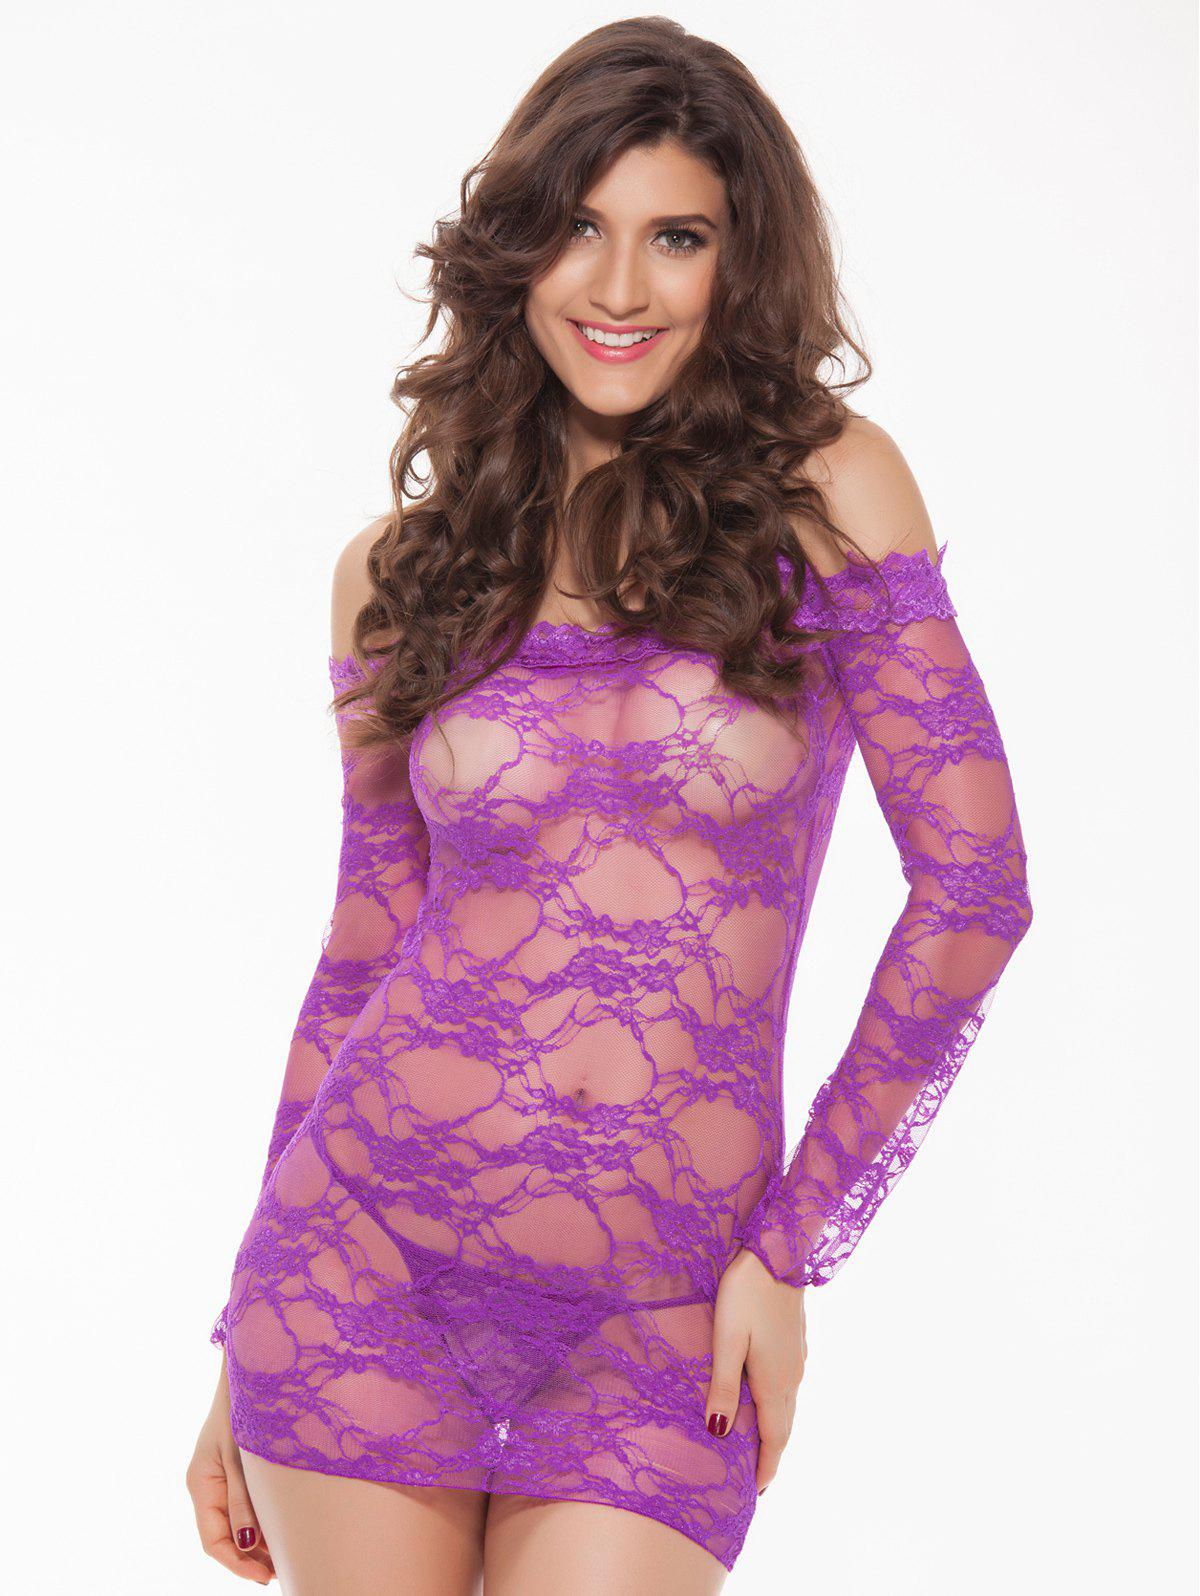 Alluring Women's Off-The-Shoulder Lace Babydoll - PURPLE 3XL